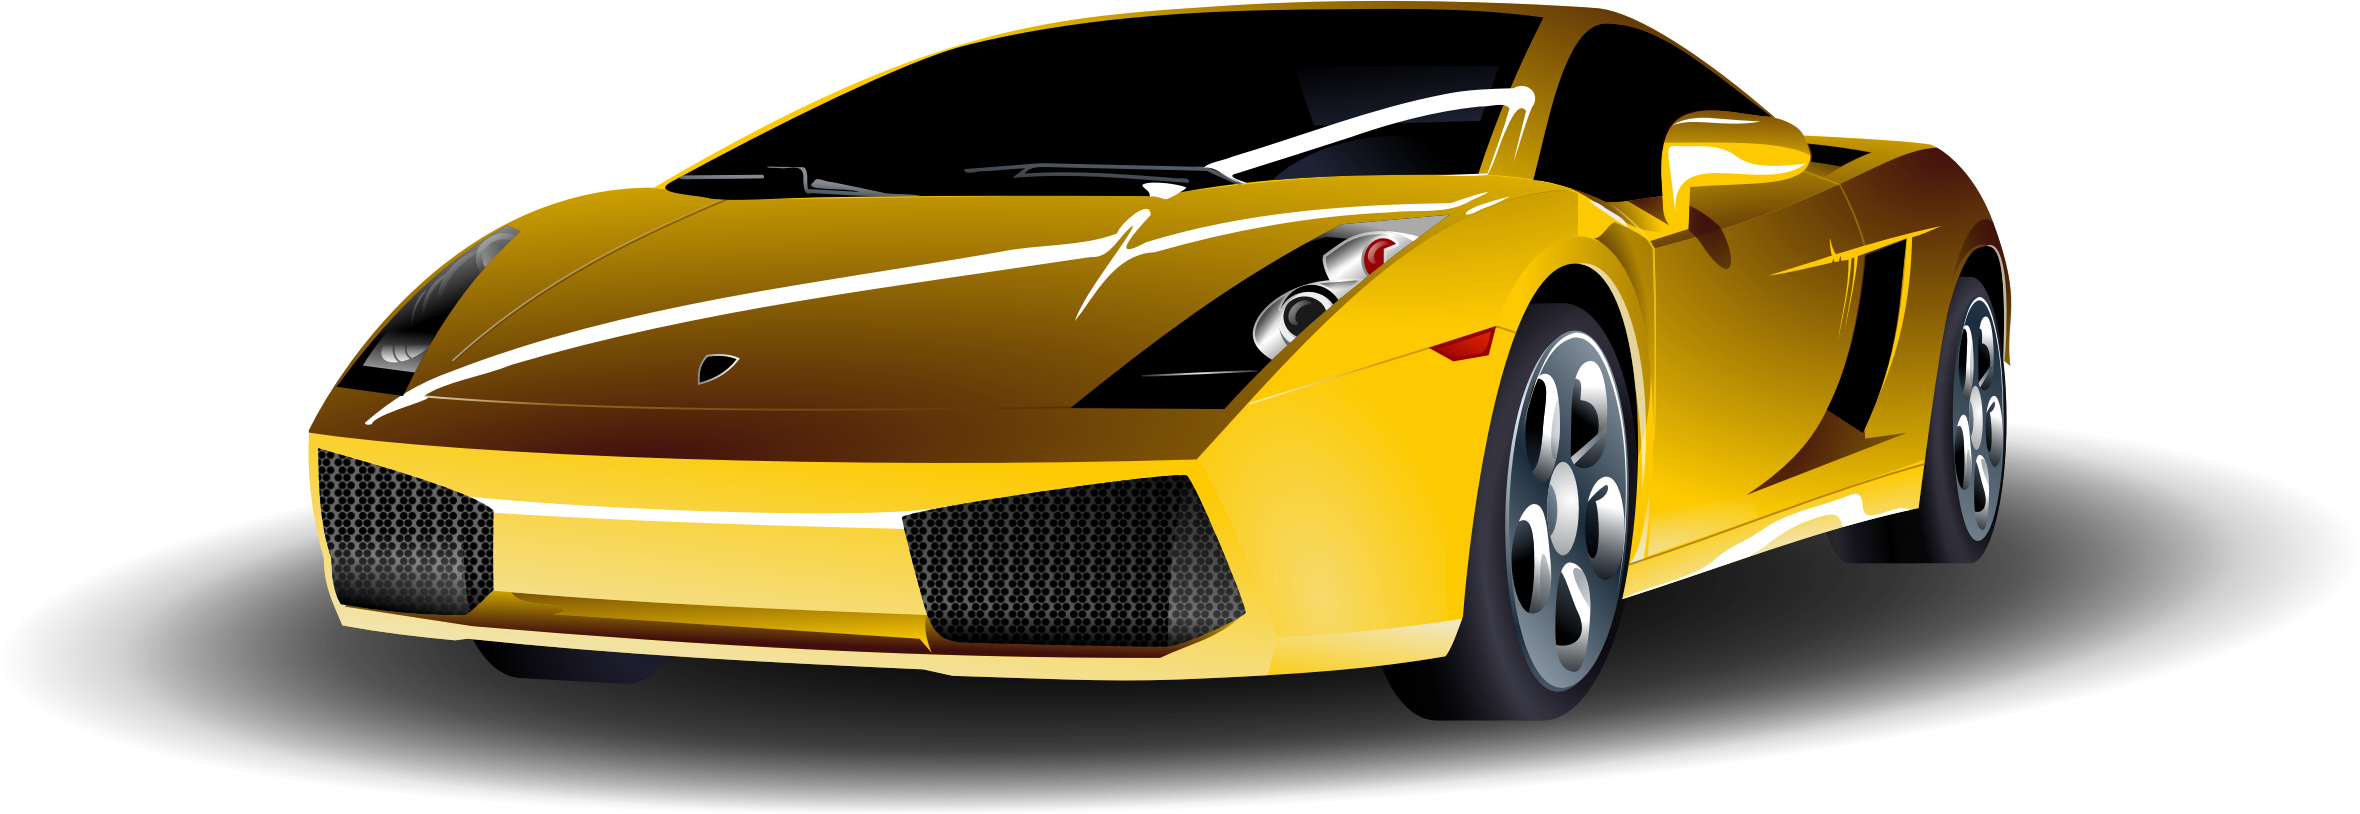 Fancy car clipart black and white 28+ Collection of Yellow Sports Car Clipart | High quality, free ... black and white